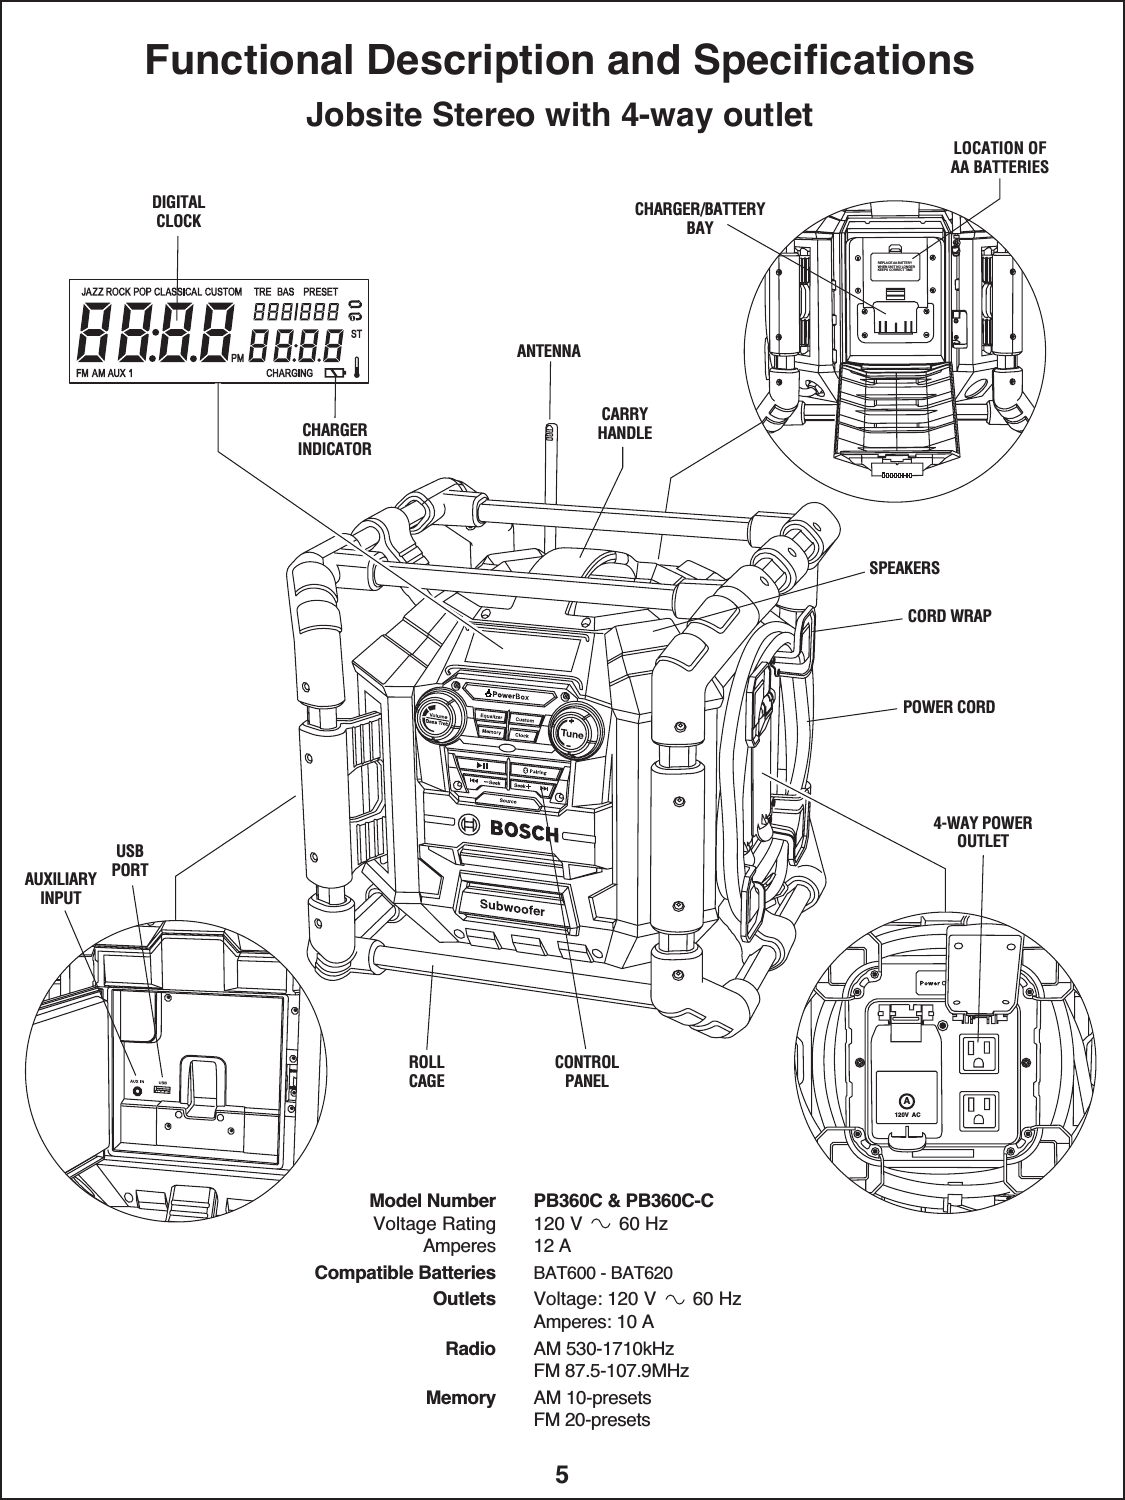 Robert Bosch Tool Pb360c Power Box User Manual Bm